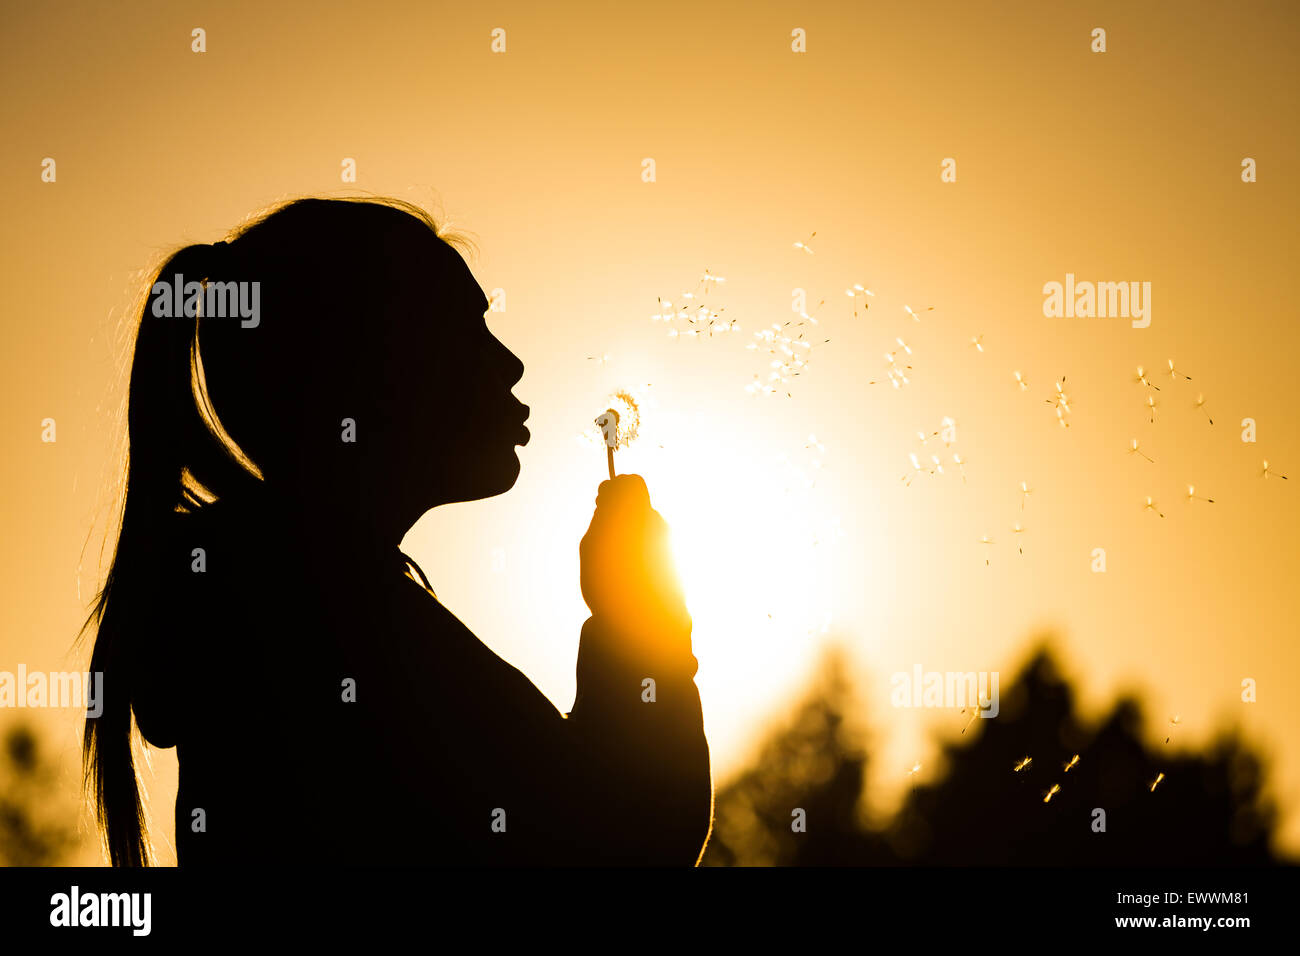 teenage girl backlit by the sun blowing a dandelion seed head, seeds catching the sunlight Copy space to the right - Stock Image